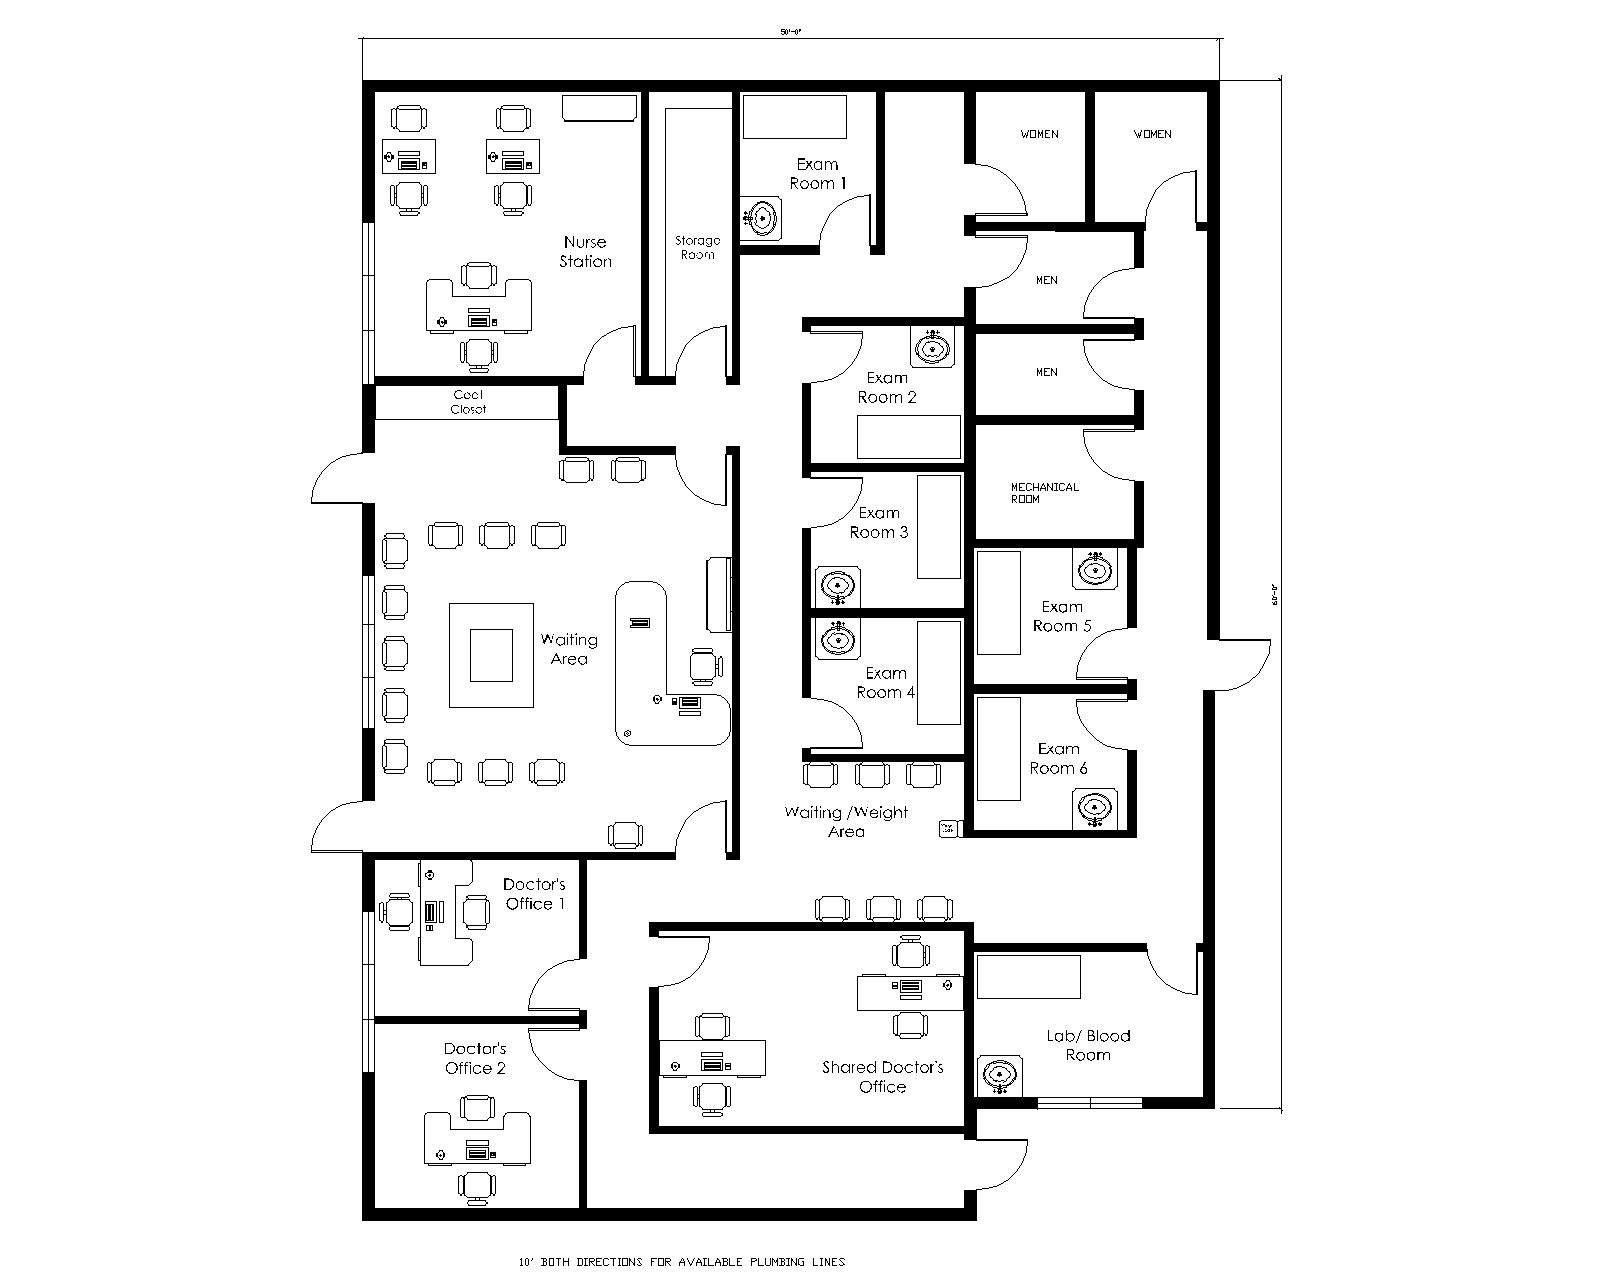 Medical office design plans doctors office layout design for Office layout design